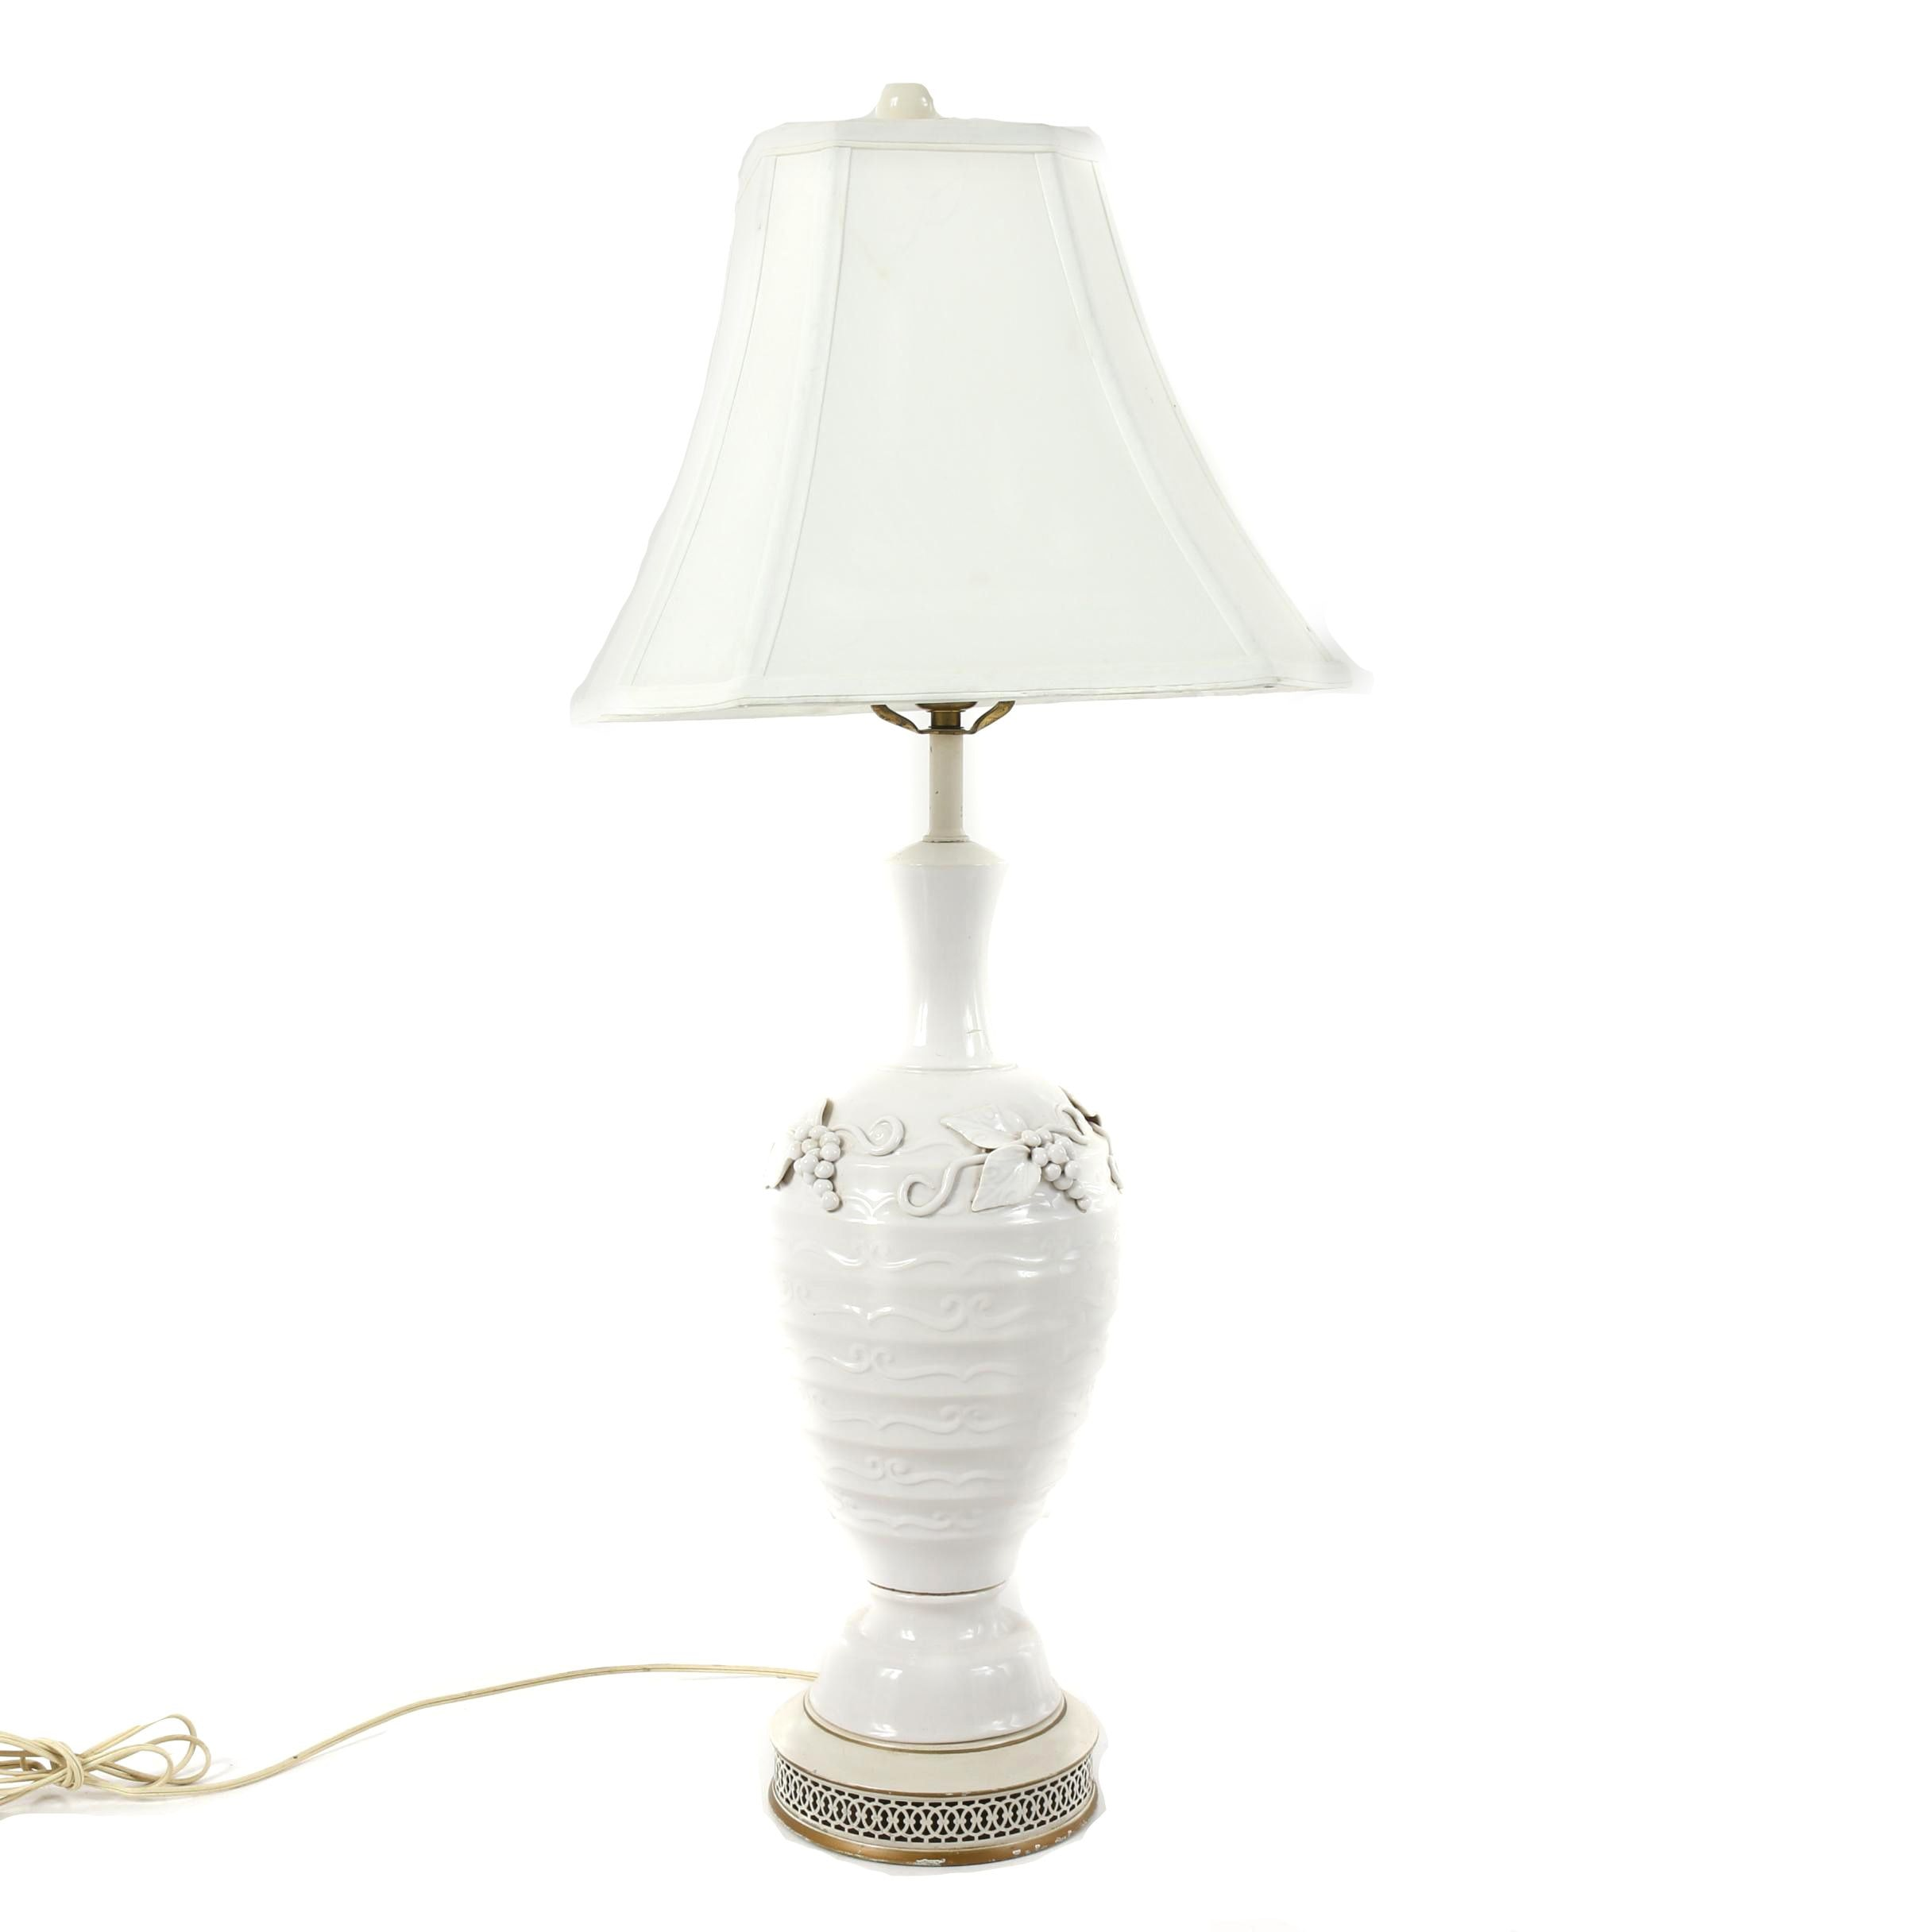 Vintage Italian Style Grape Motif White Ceramic Table Lamp w/ White Fabric Shade